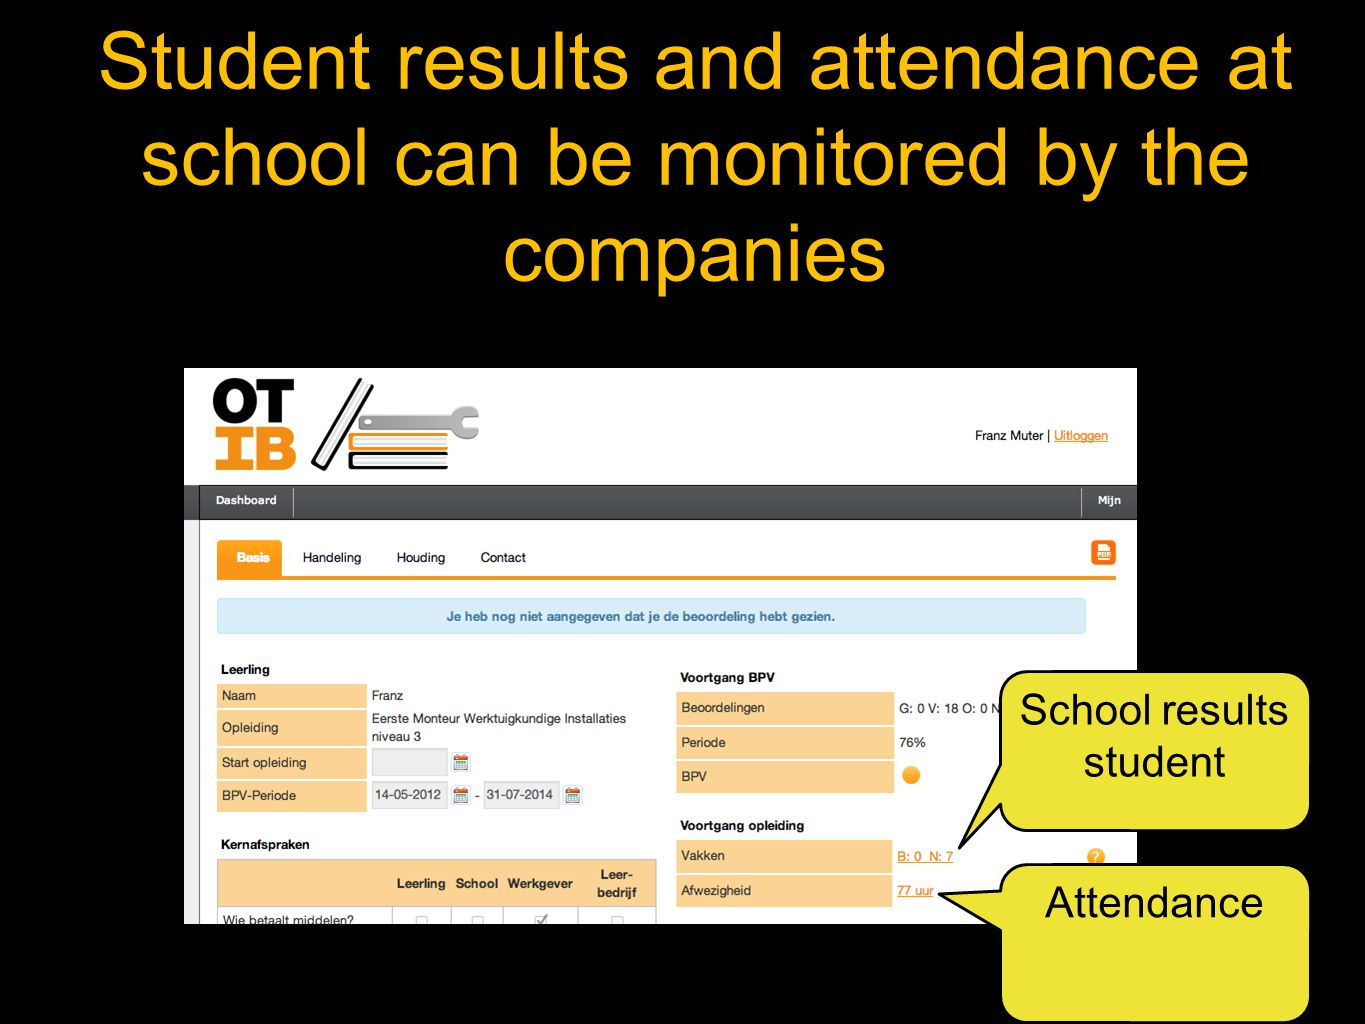 Student results and attendance at school can be monitored by the companies School results student Attendance